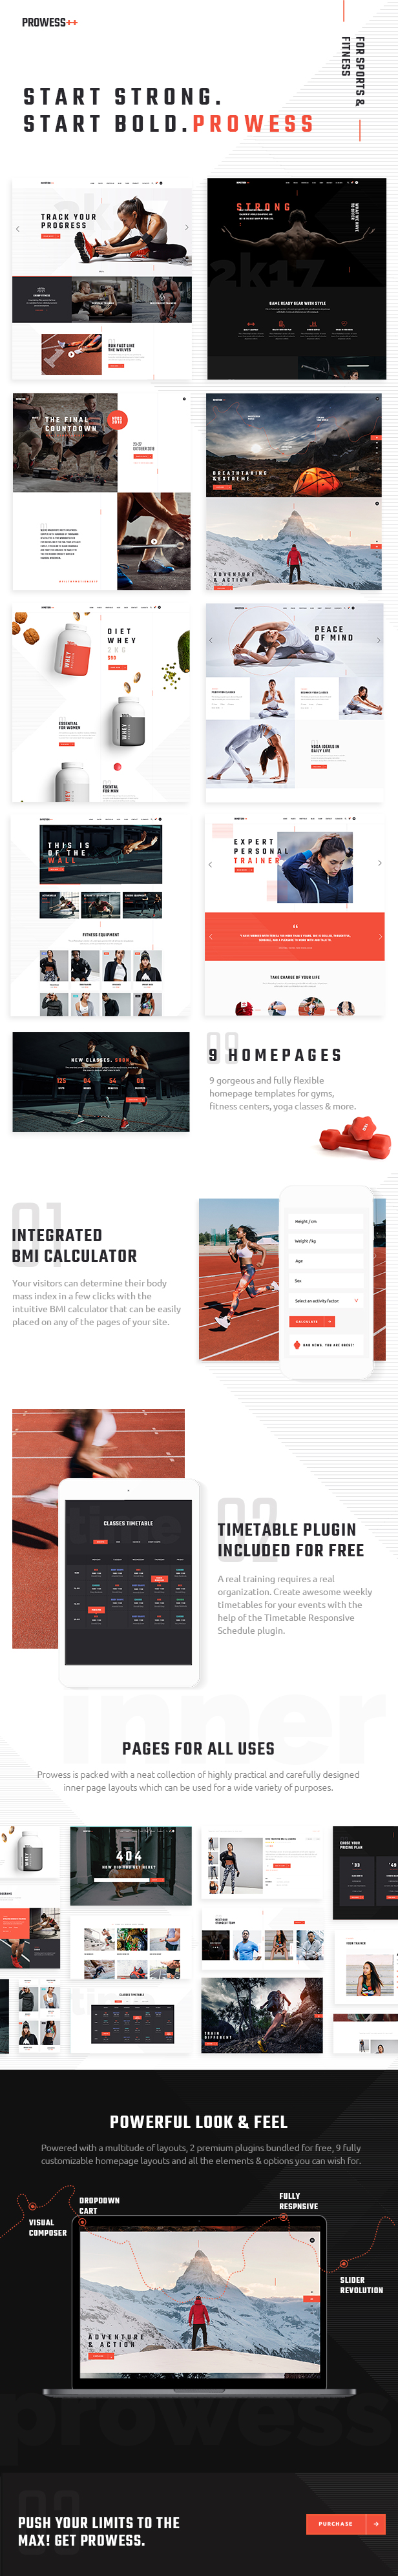 WordPress theme Prowess - A Fitness and Gym WordPress Theme (Health & Beauty)